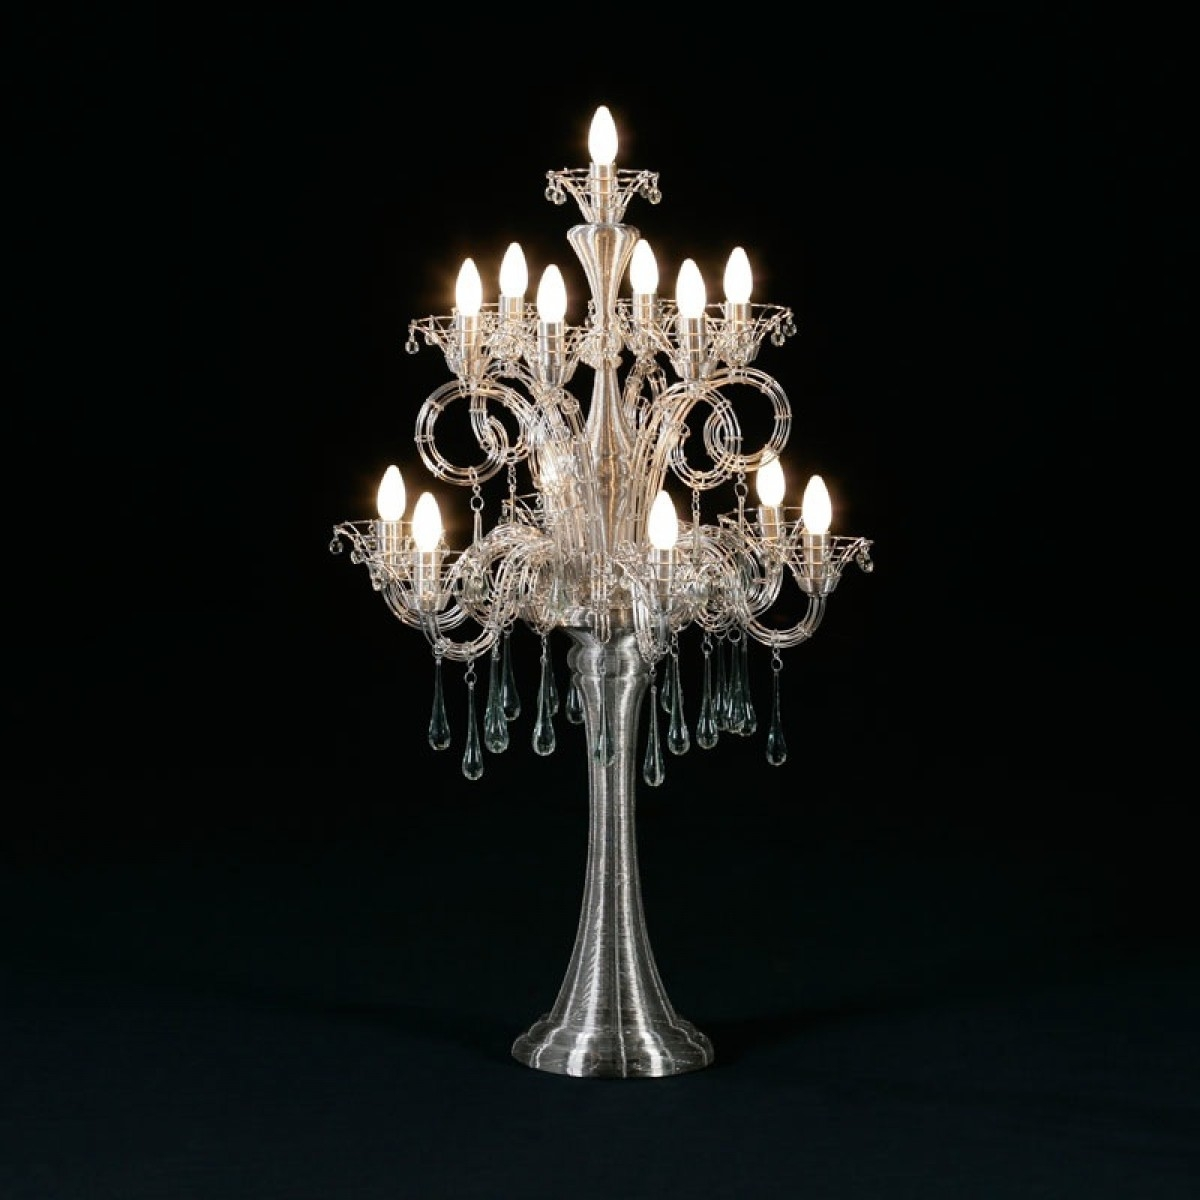 Table Chandelier New For Your Home Decoration Ideas With Table Pertaining To Table Chandeliers (#12 of 12)